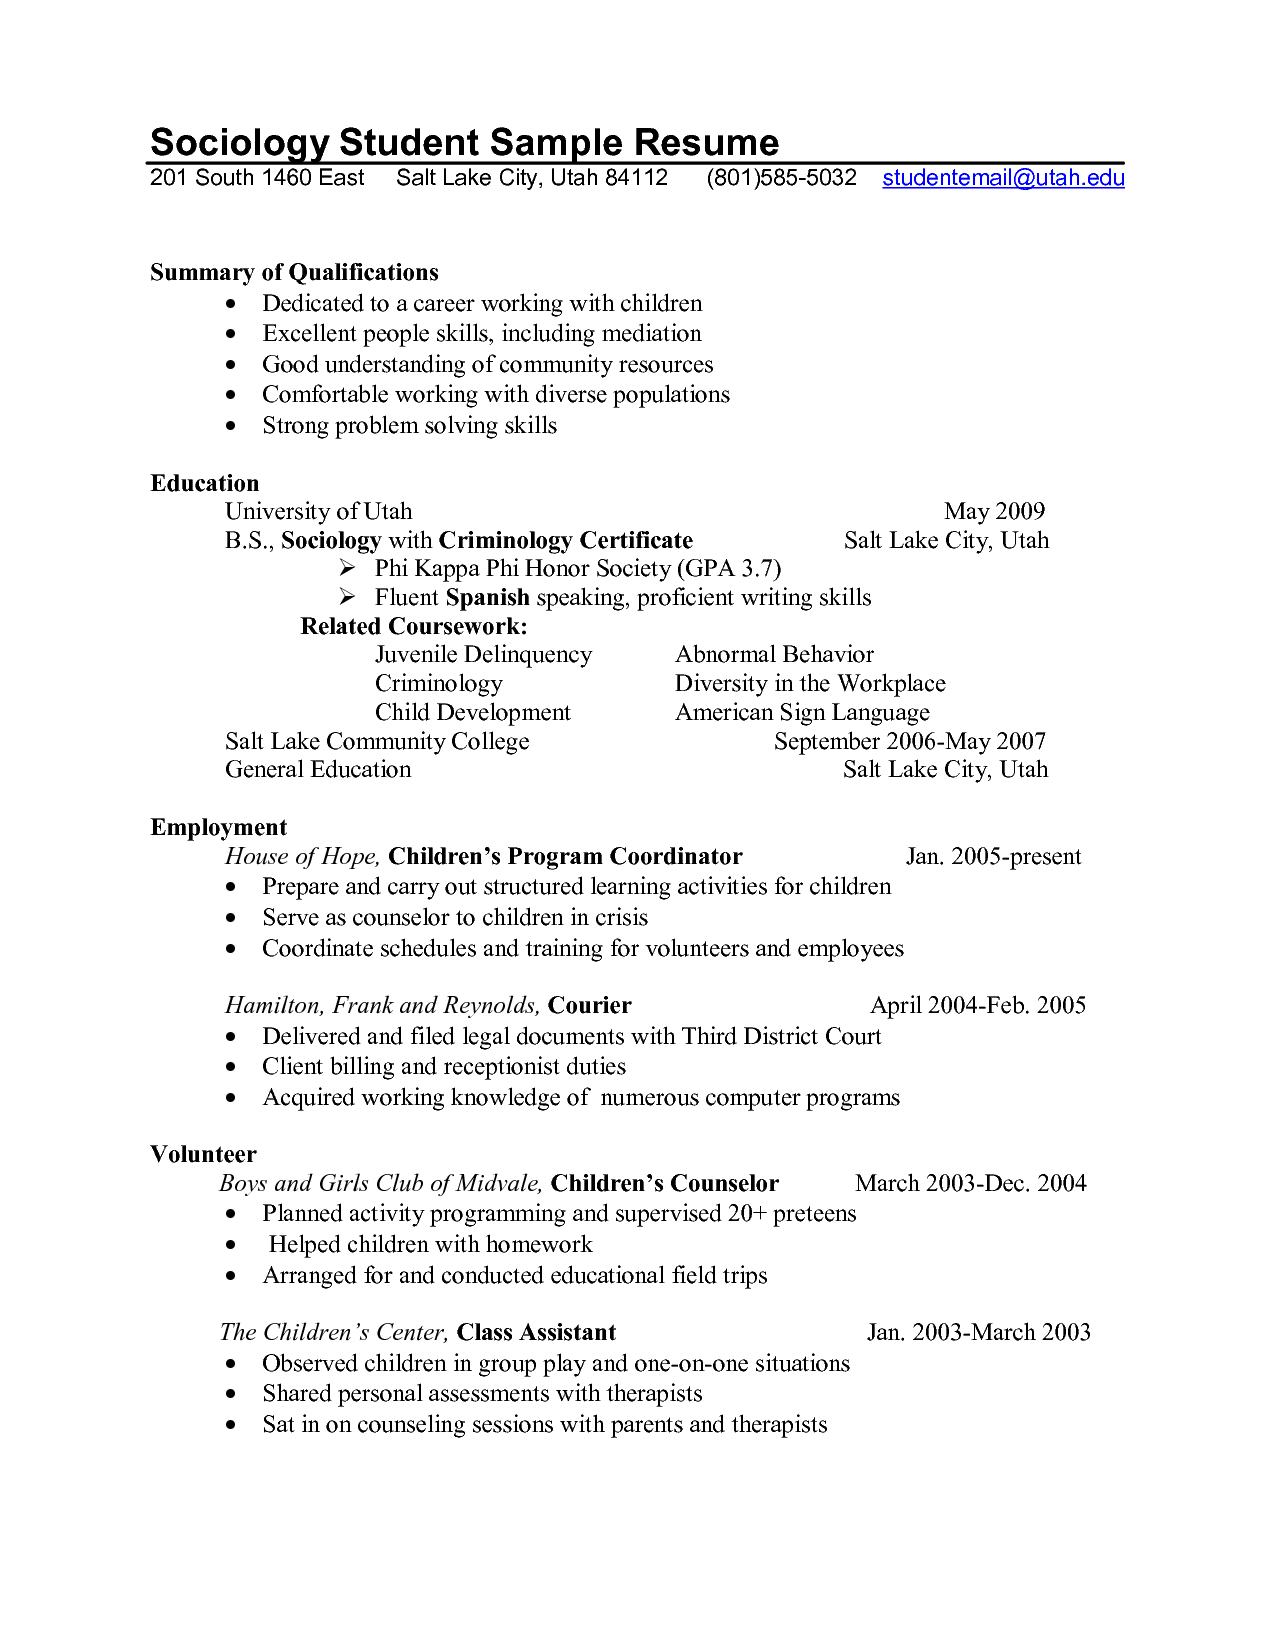 Professional School Counselor Resume | Sociology Student Sample Resume  South East Salt Lake City Utah